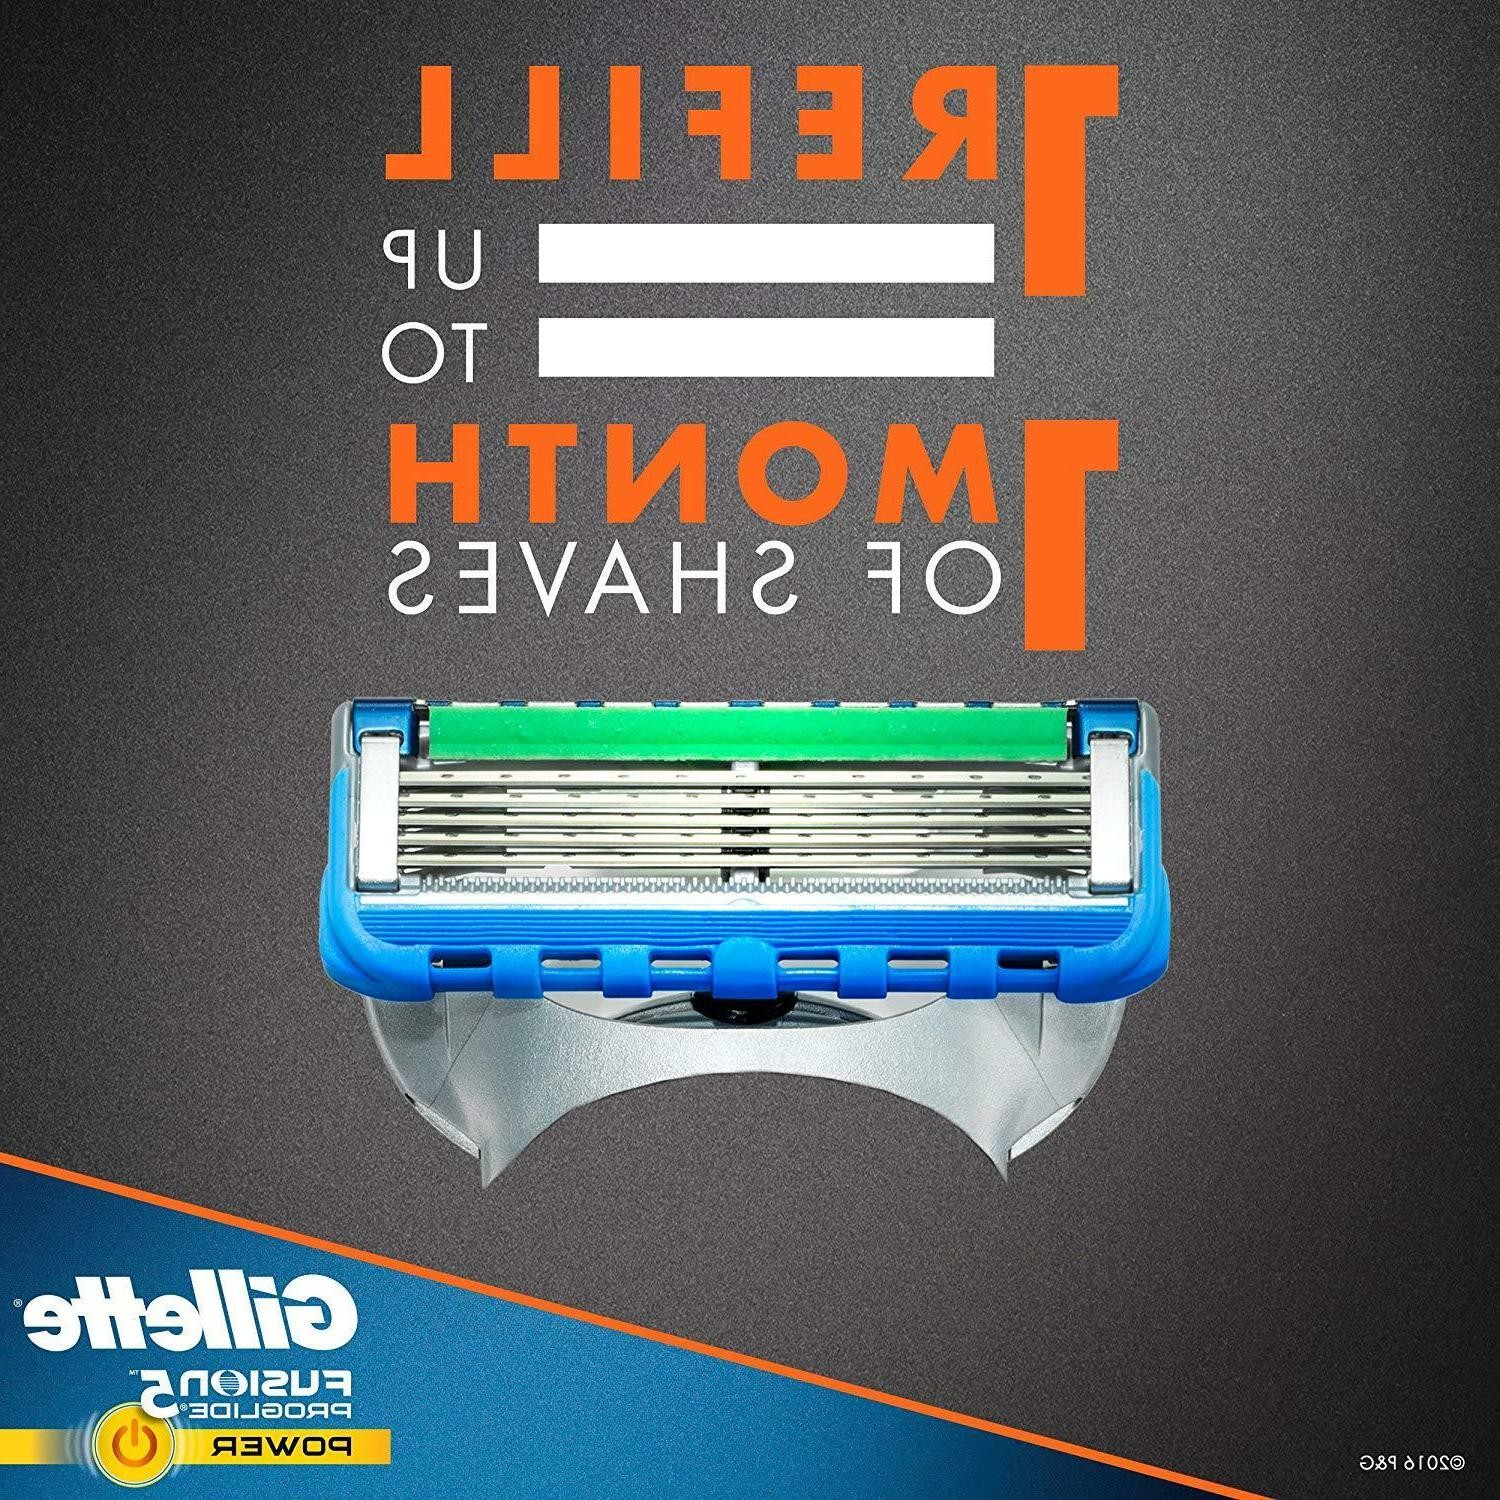 Gillette Razor Refills-Packaging